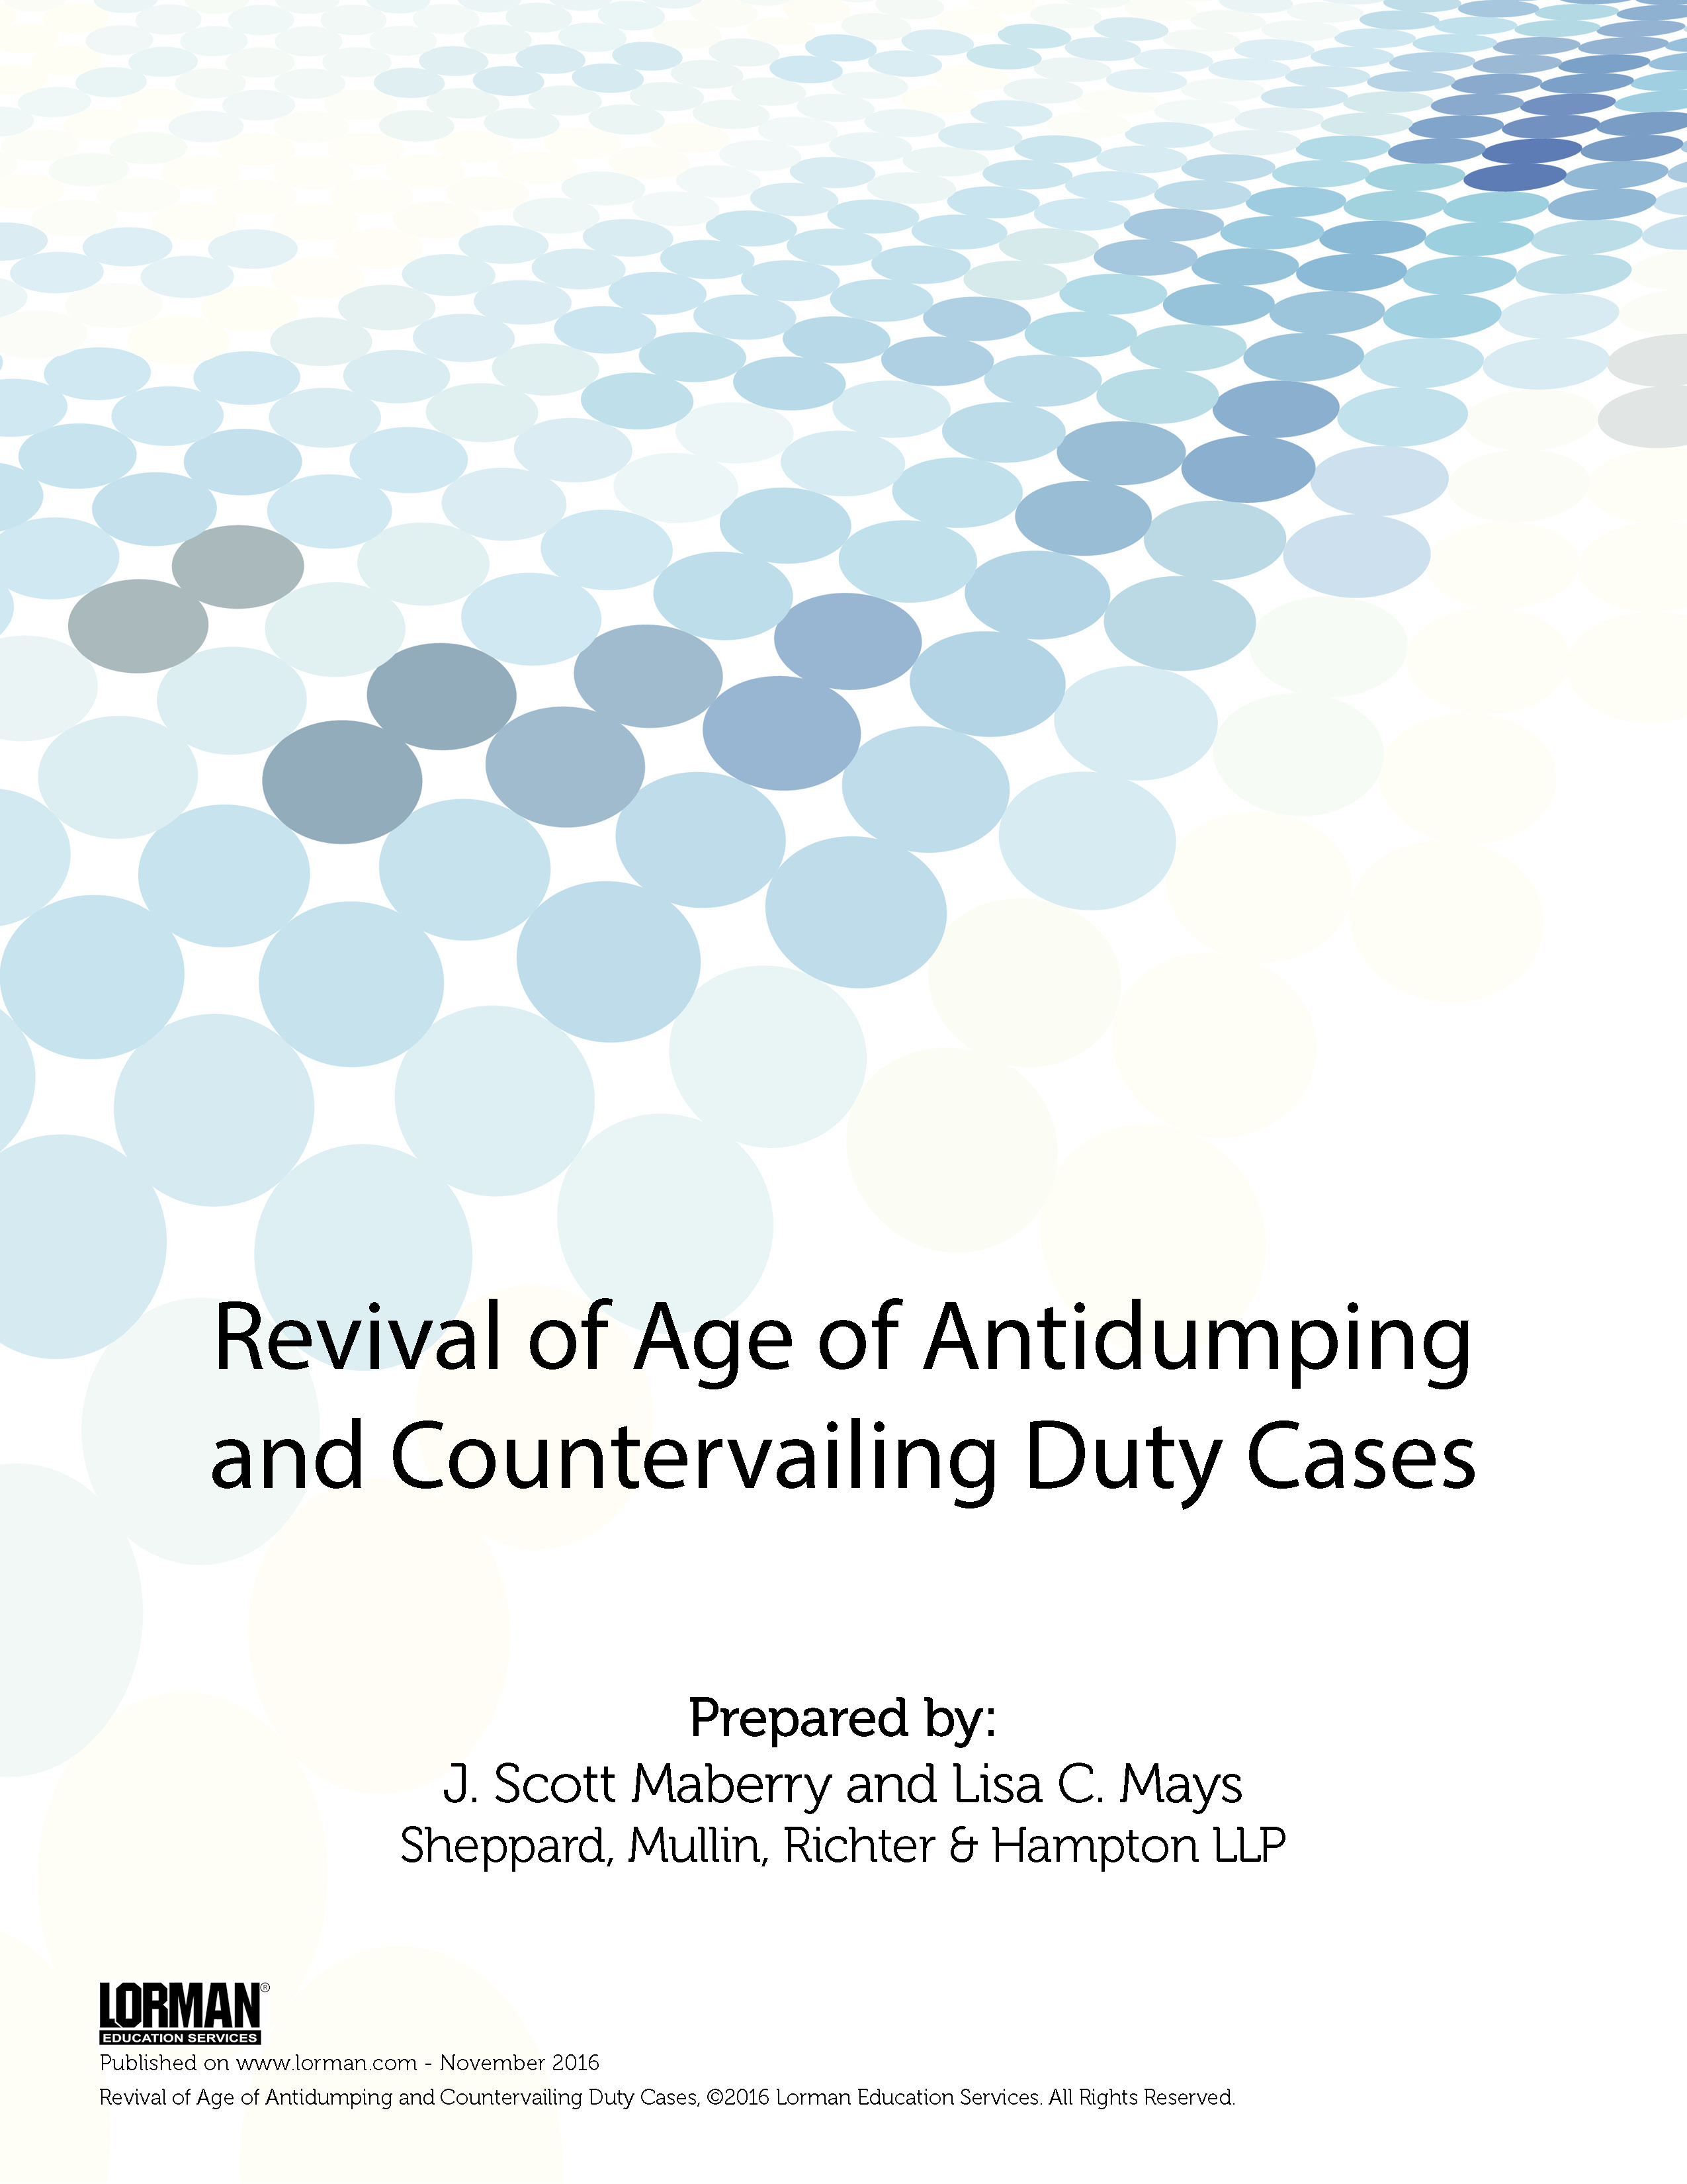 Revival of Age of Antidumping and Countervailing Duty Cases